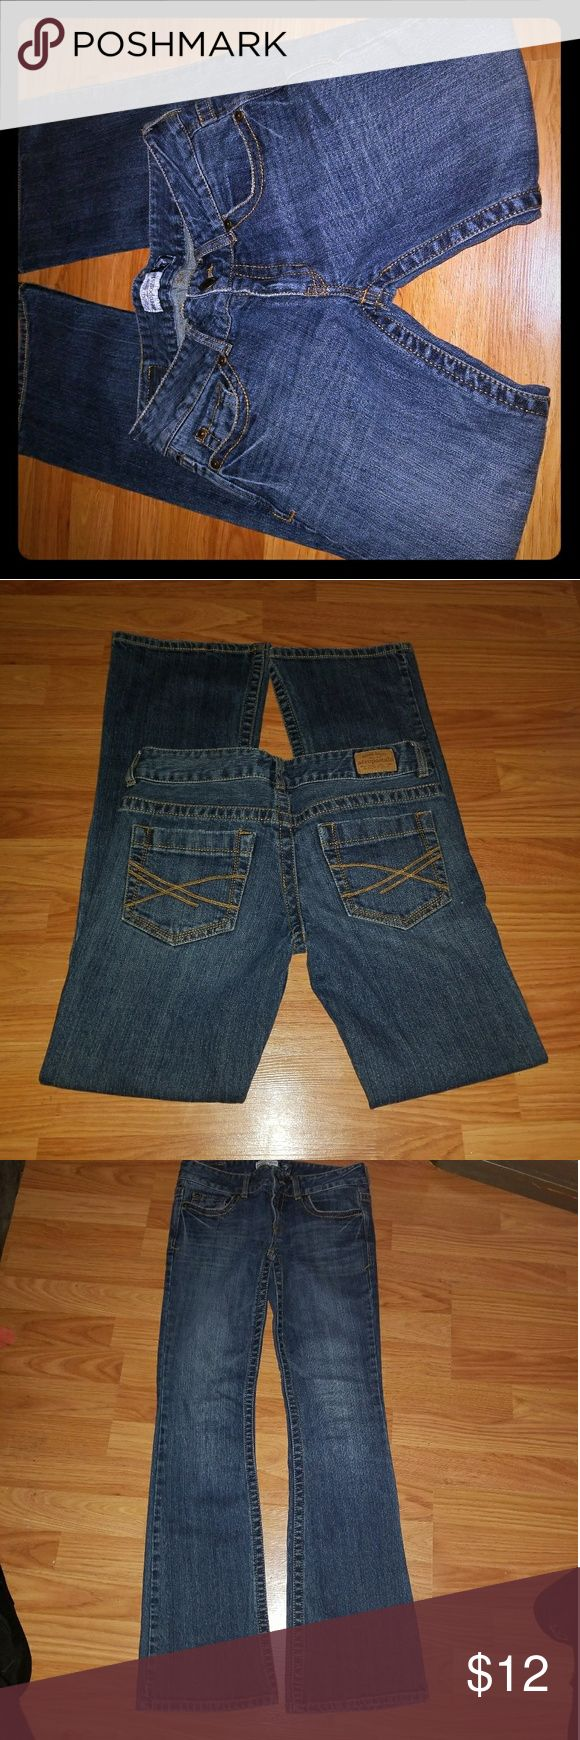 Aeropostale Hailey Skinny Flare 3/4 A great fit. In between bootcut and skinny jeans Brand new size 3/4 reg Aeropostale Jeans